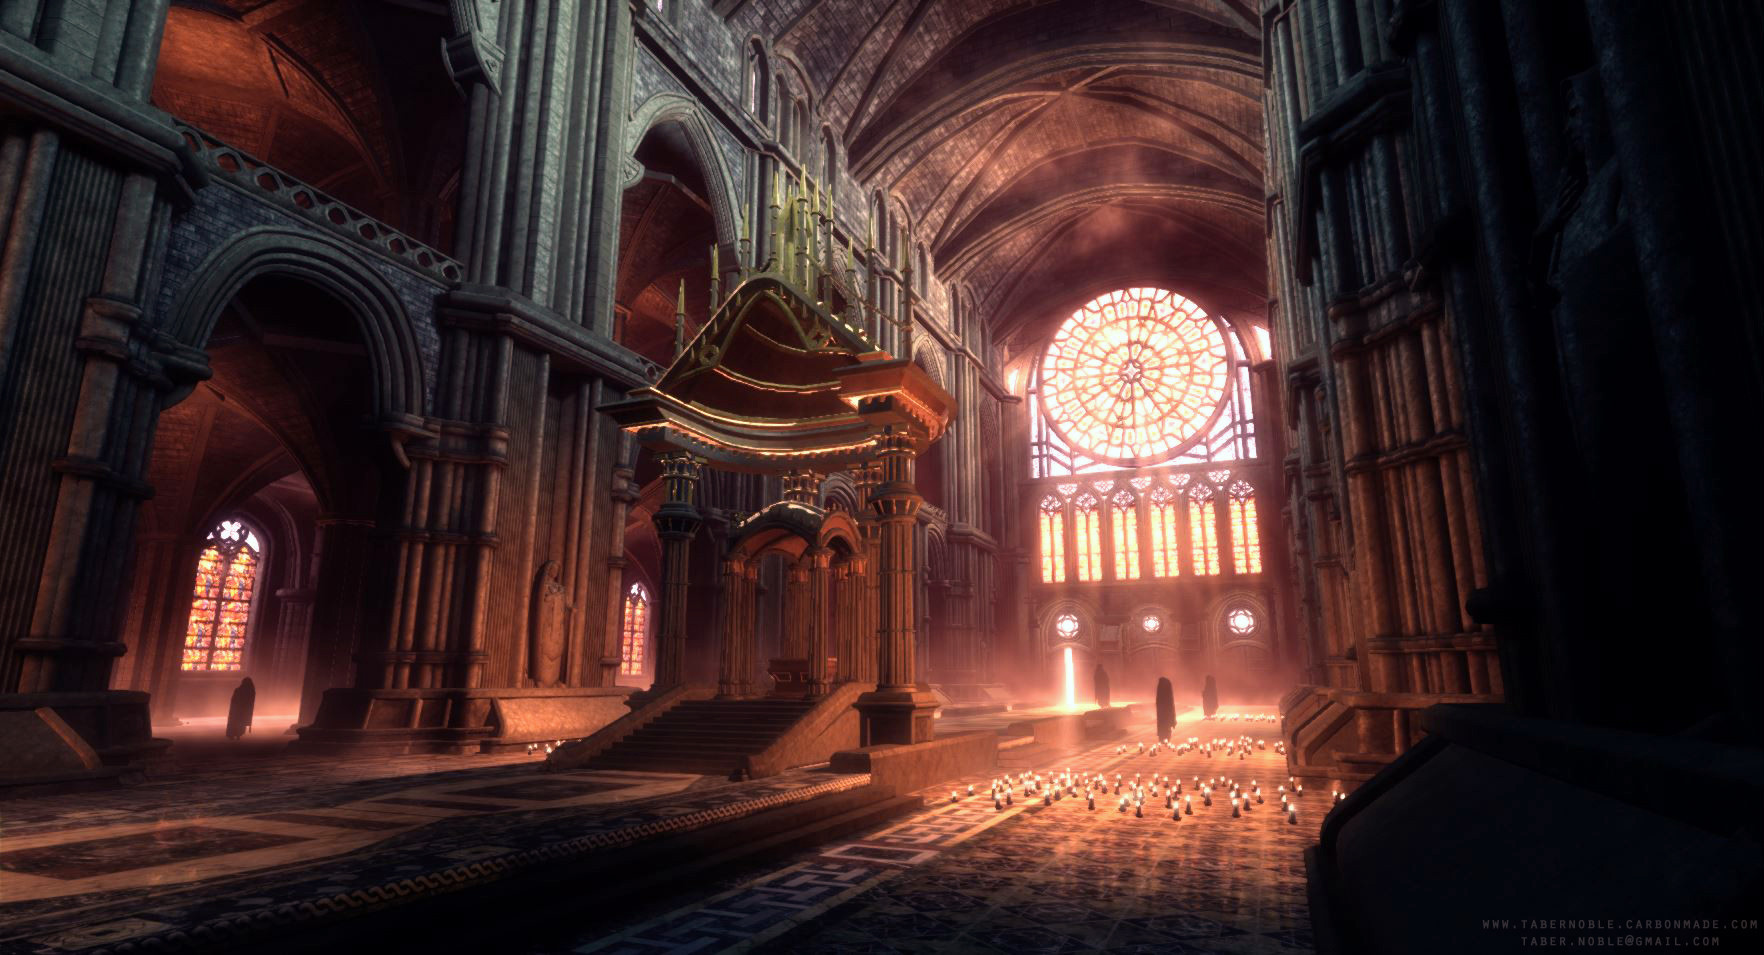 udk___the_cathedral_by_therealfroman-d68hua6.jpg